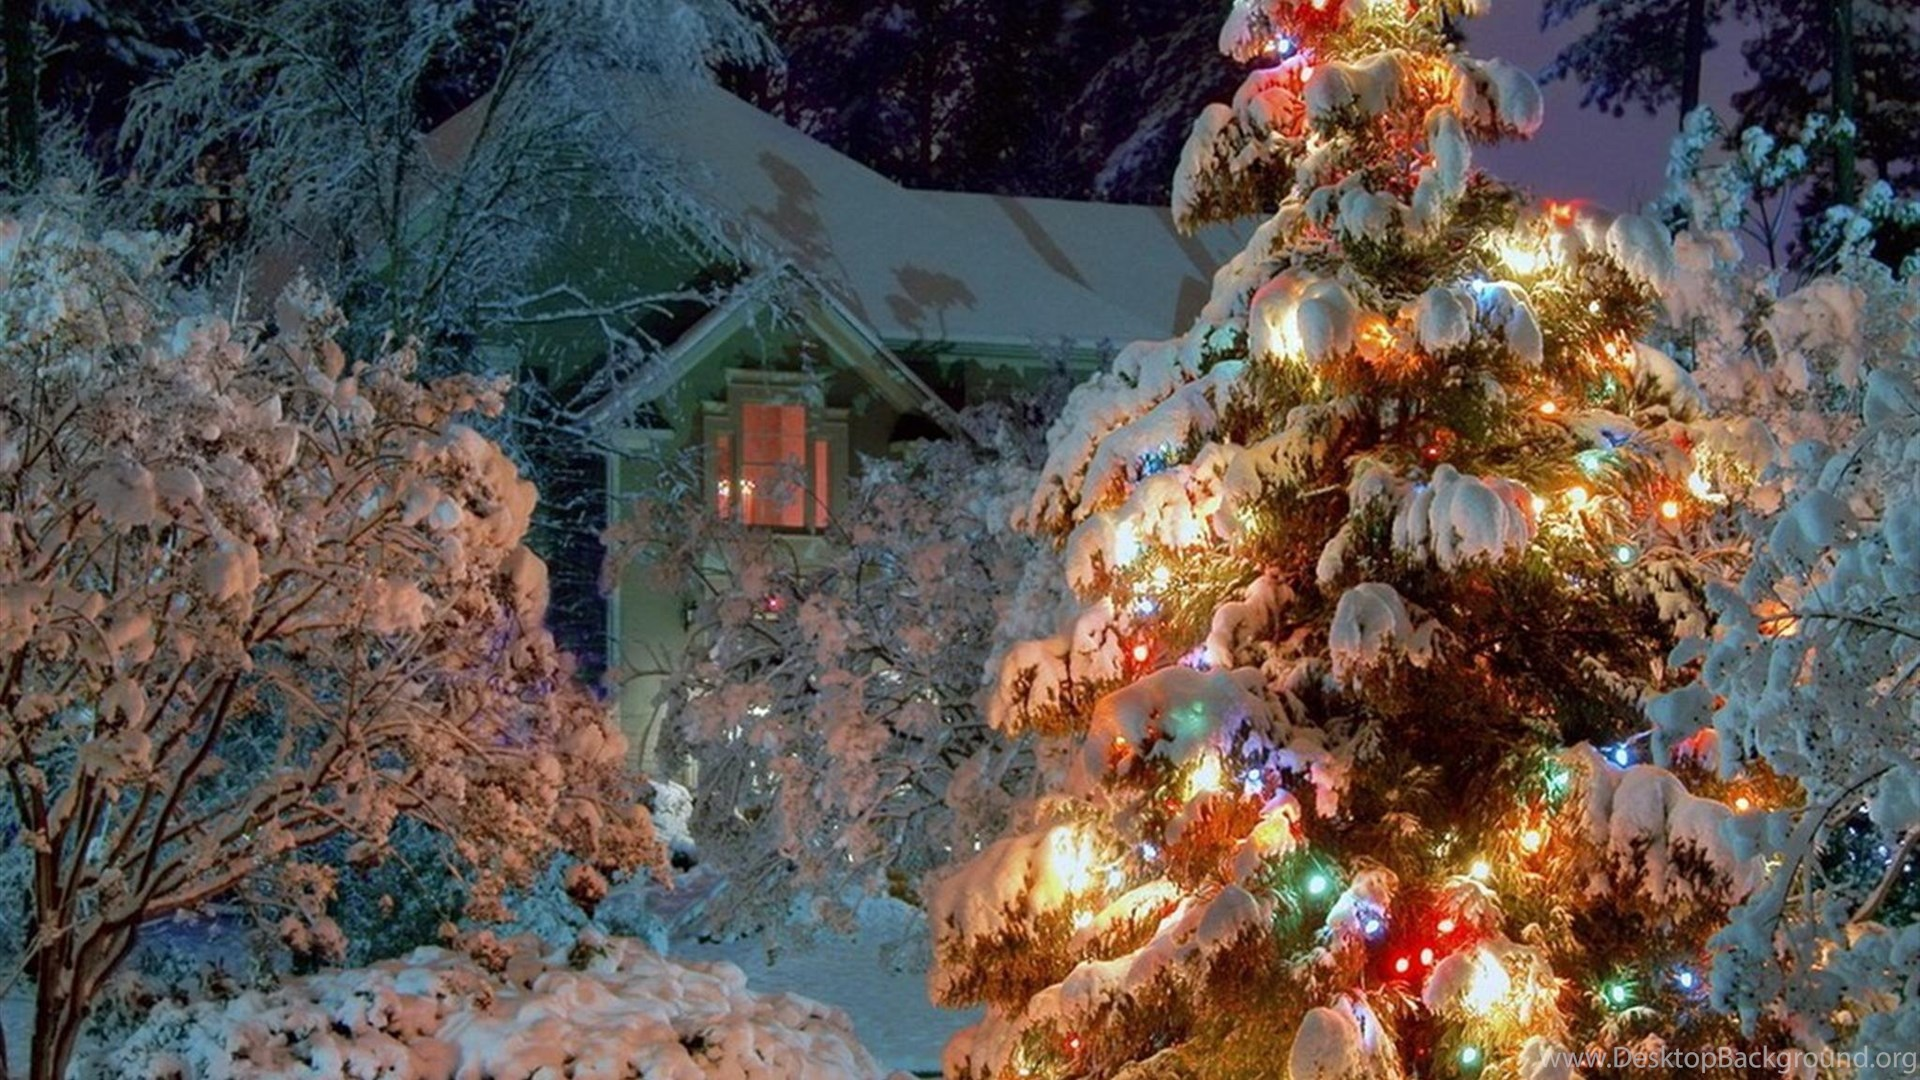 Holiday Wallpaper For Ipad: Gallery For Hd Christmas Wallpapers Ipad Desktop Background